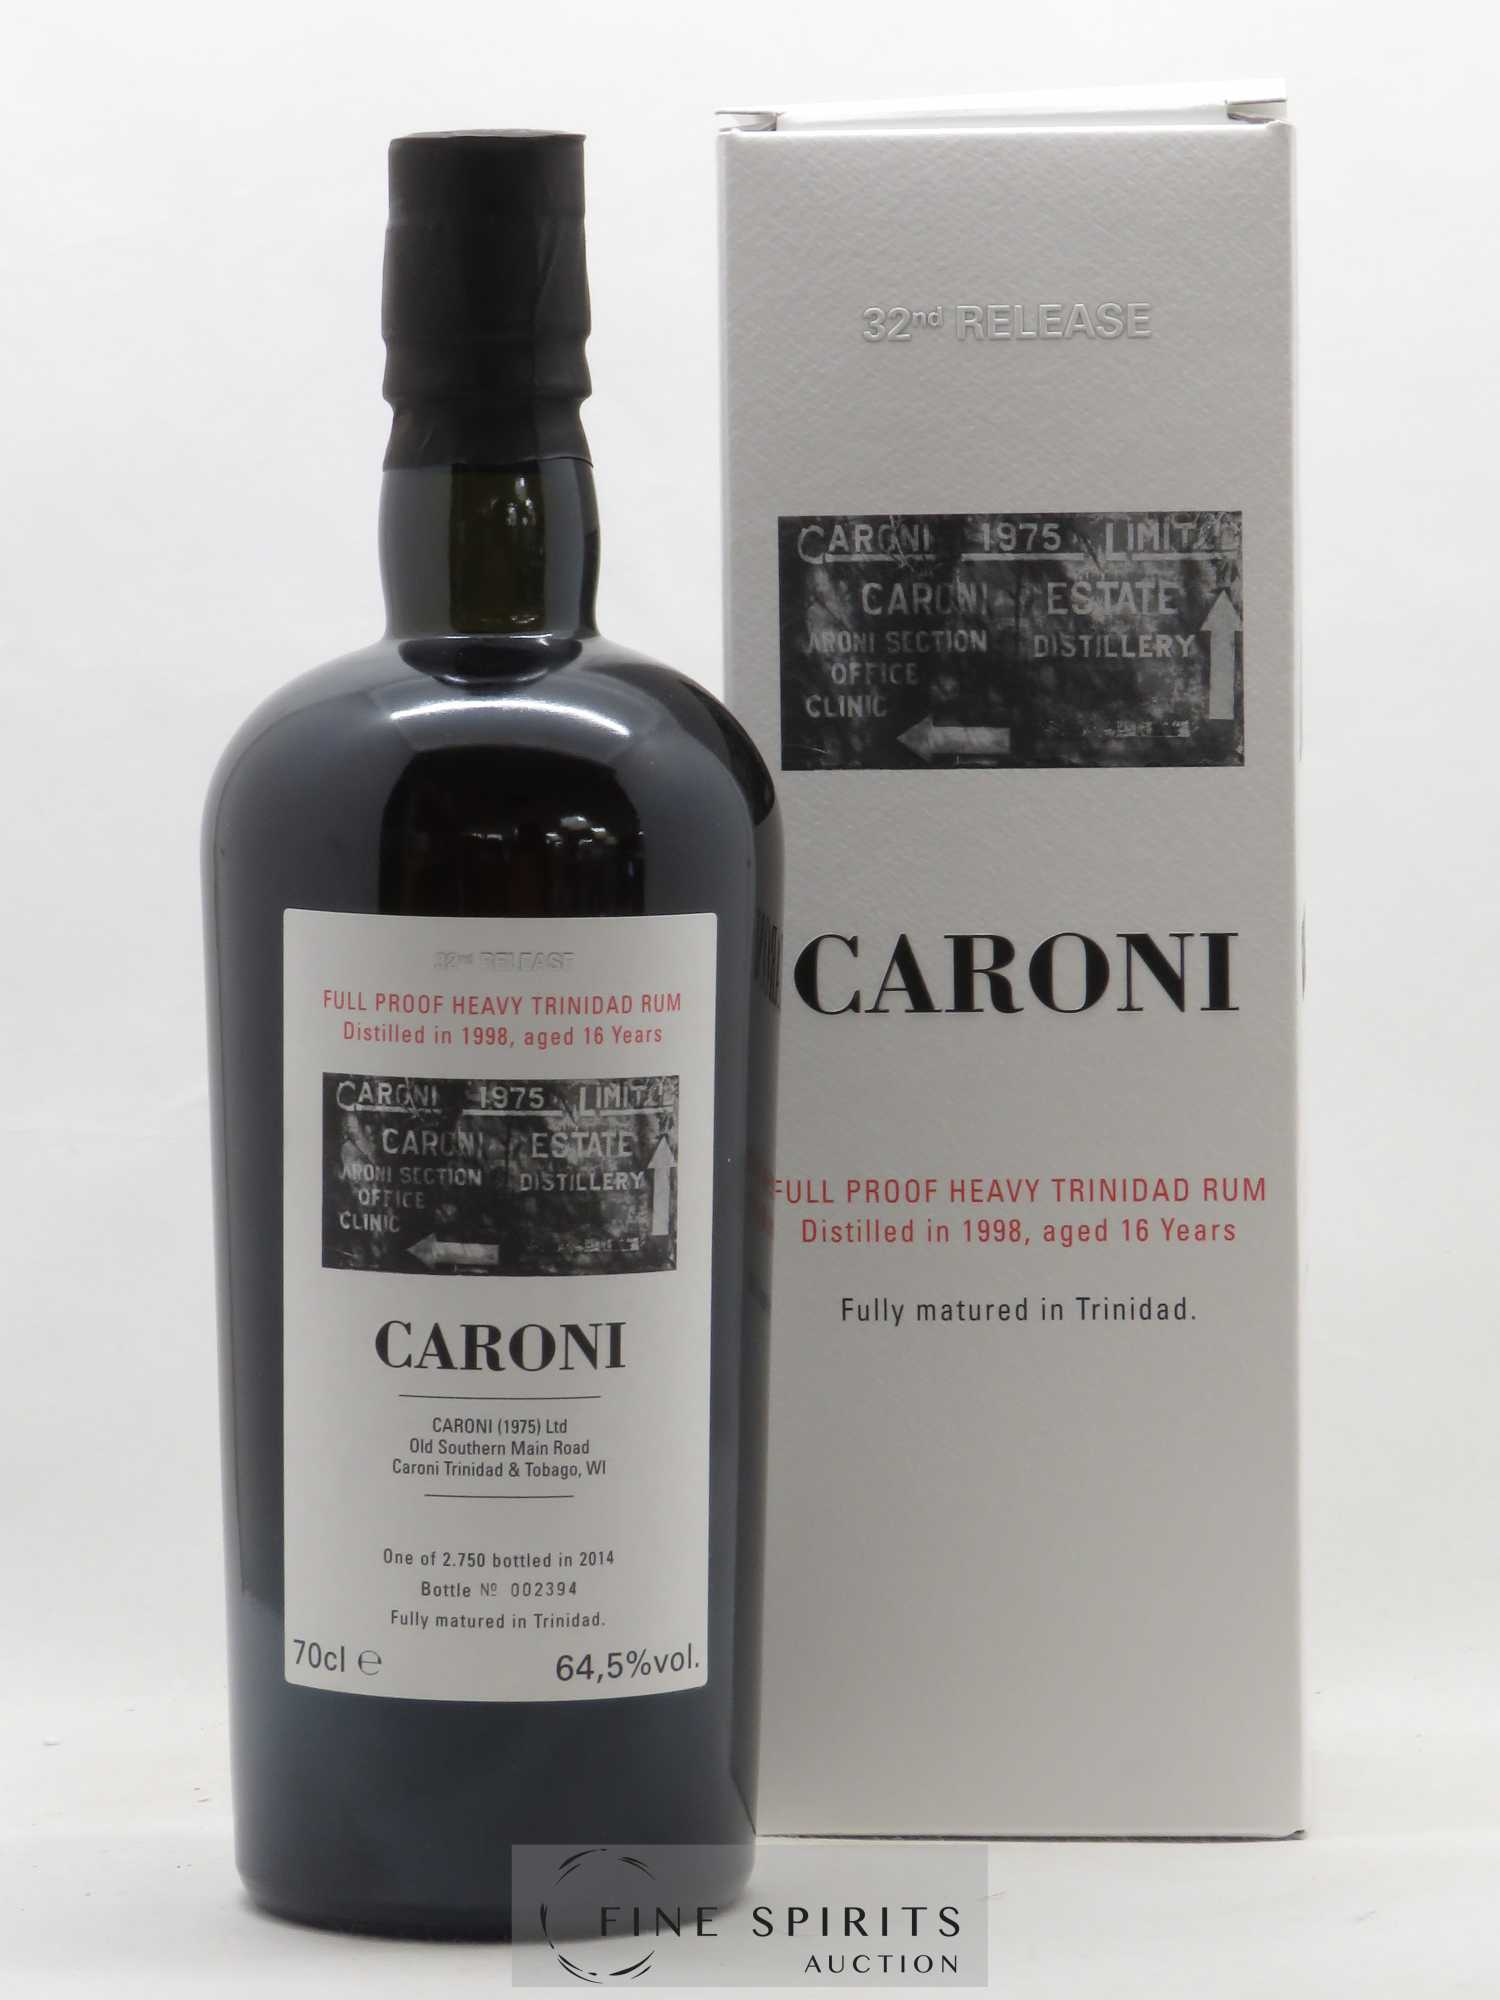 Rhum Caroni 16 years 1998 Velier 32nd Release Full Proof Heavy   - Lot de 1 Bouteille